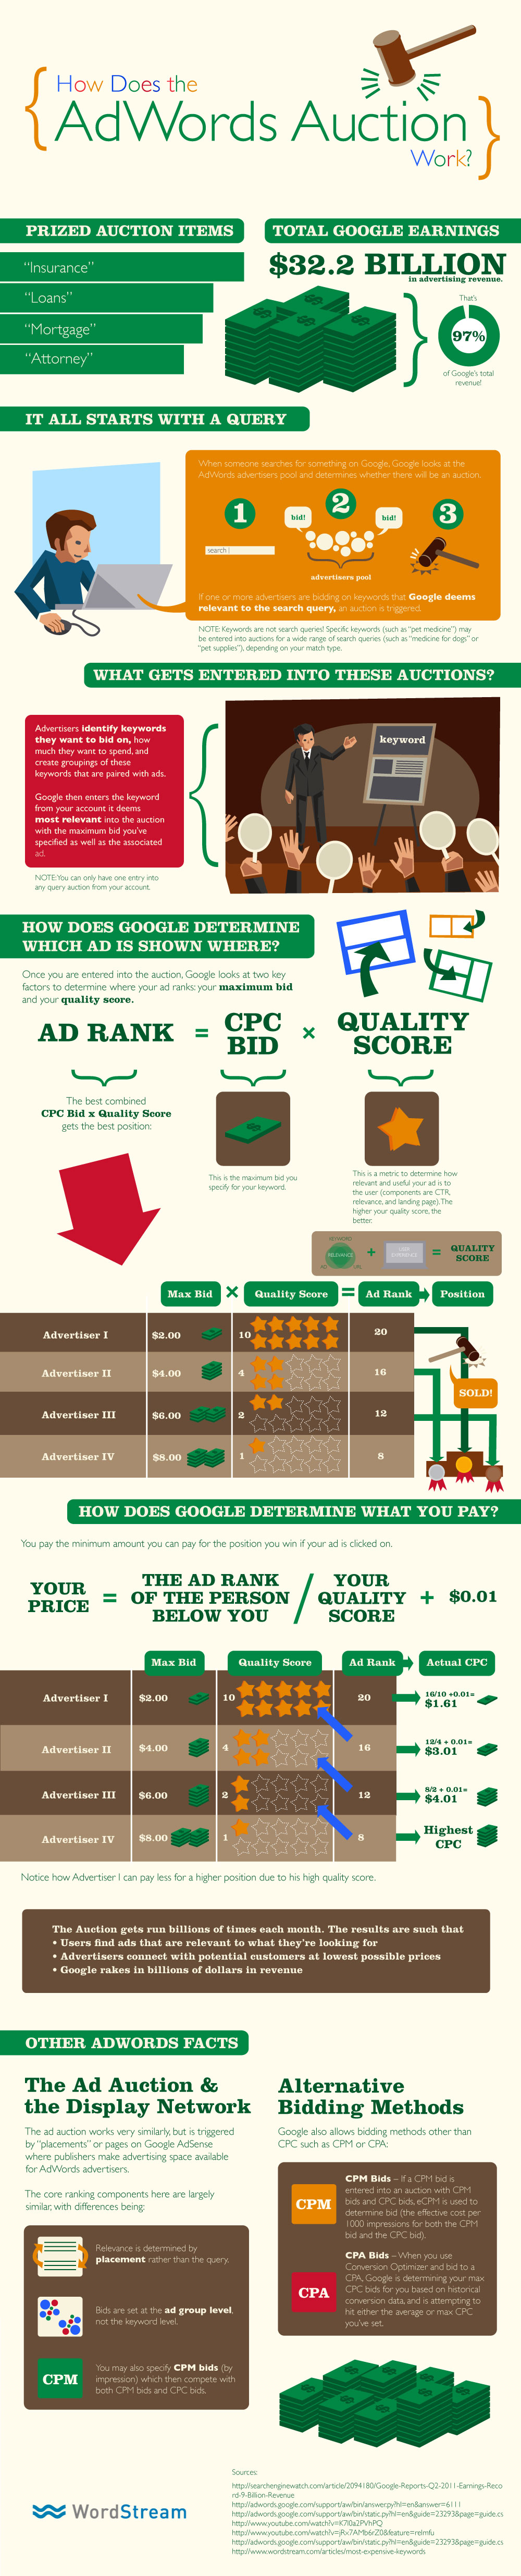 Where Does Google Make Its Money? [ infographic ]